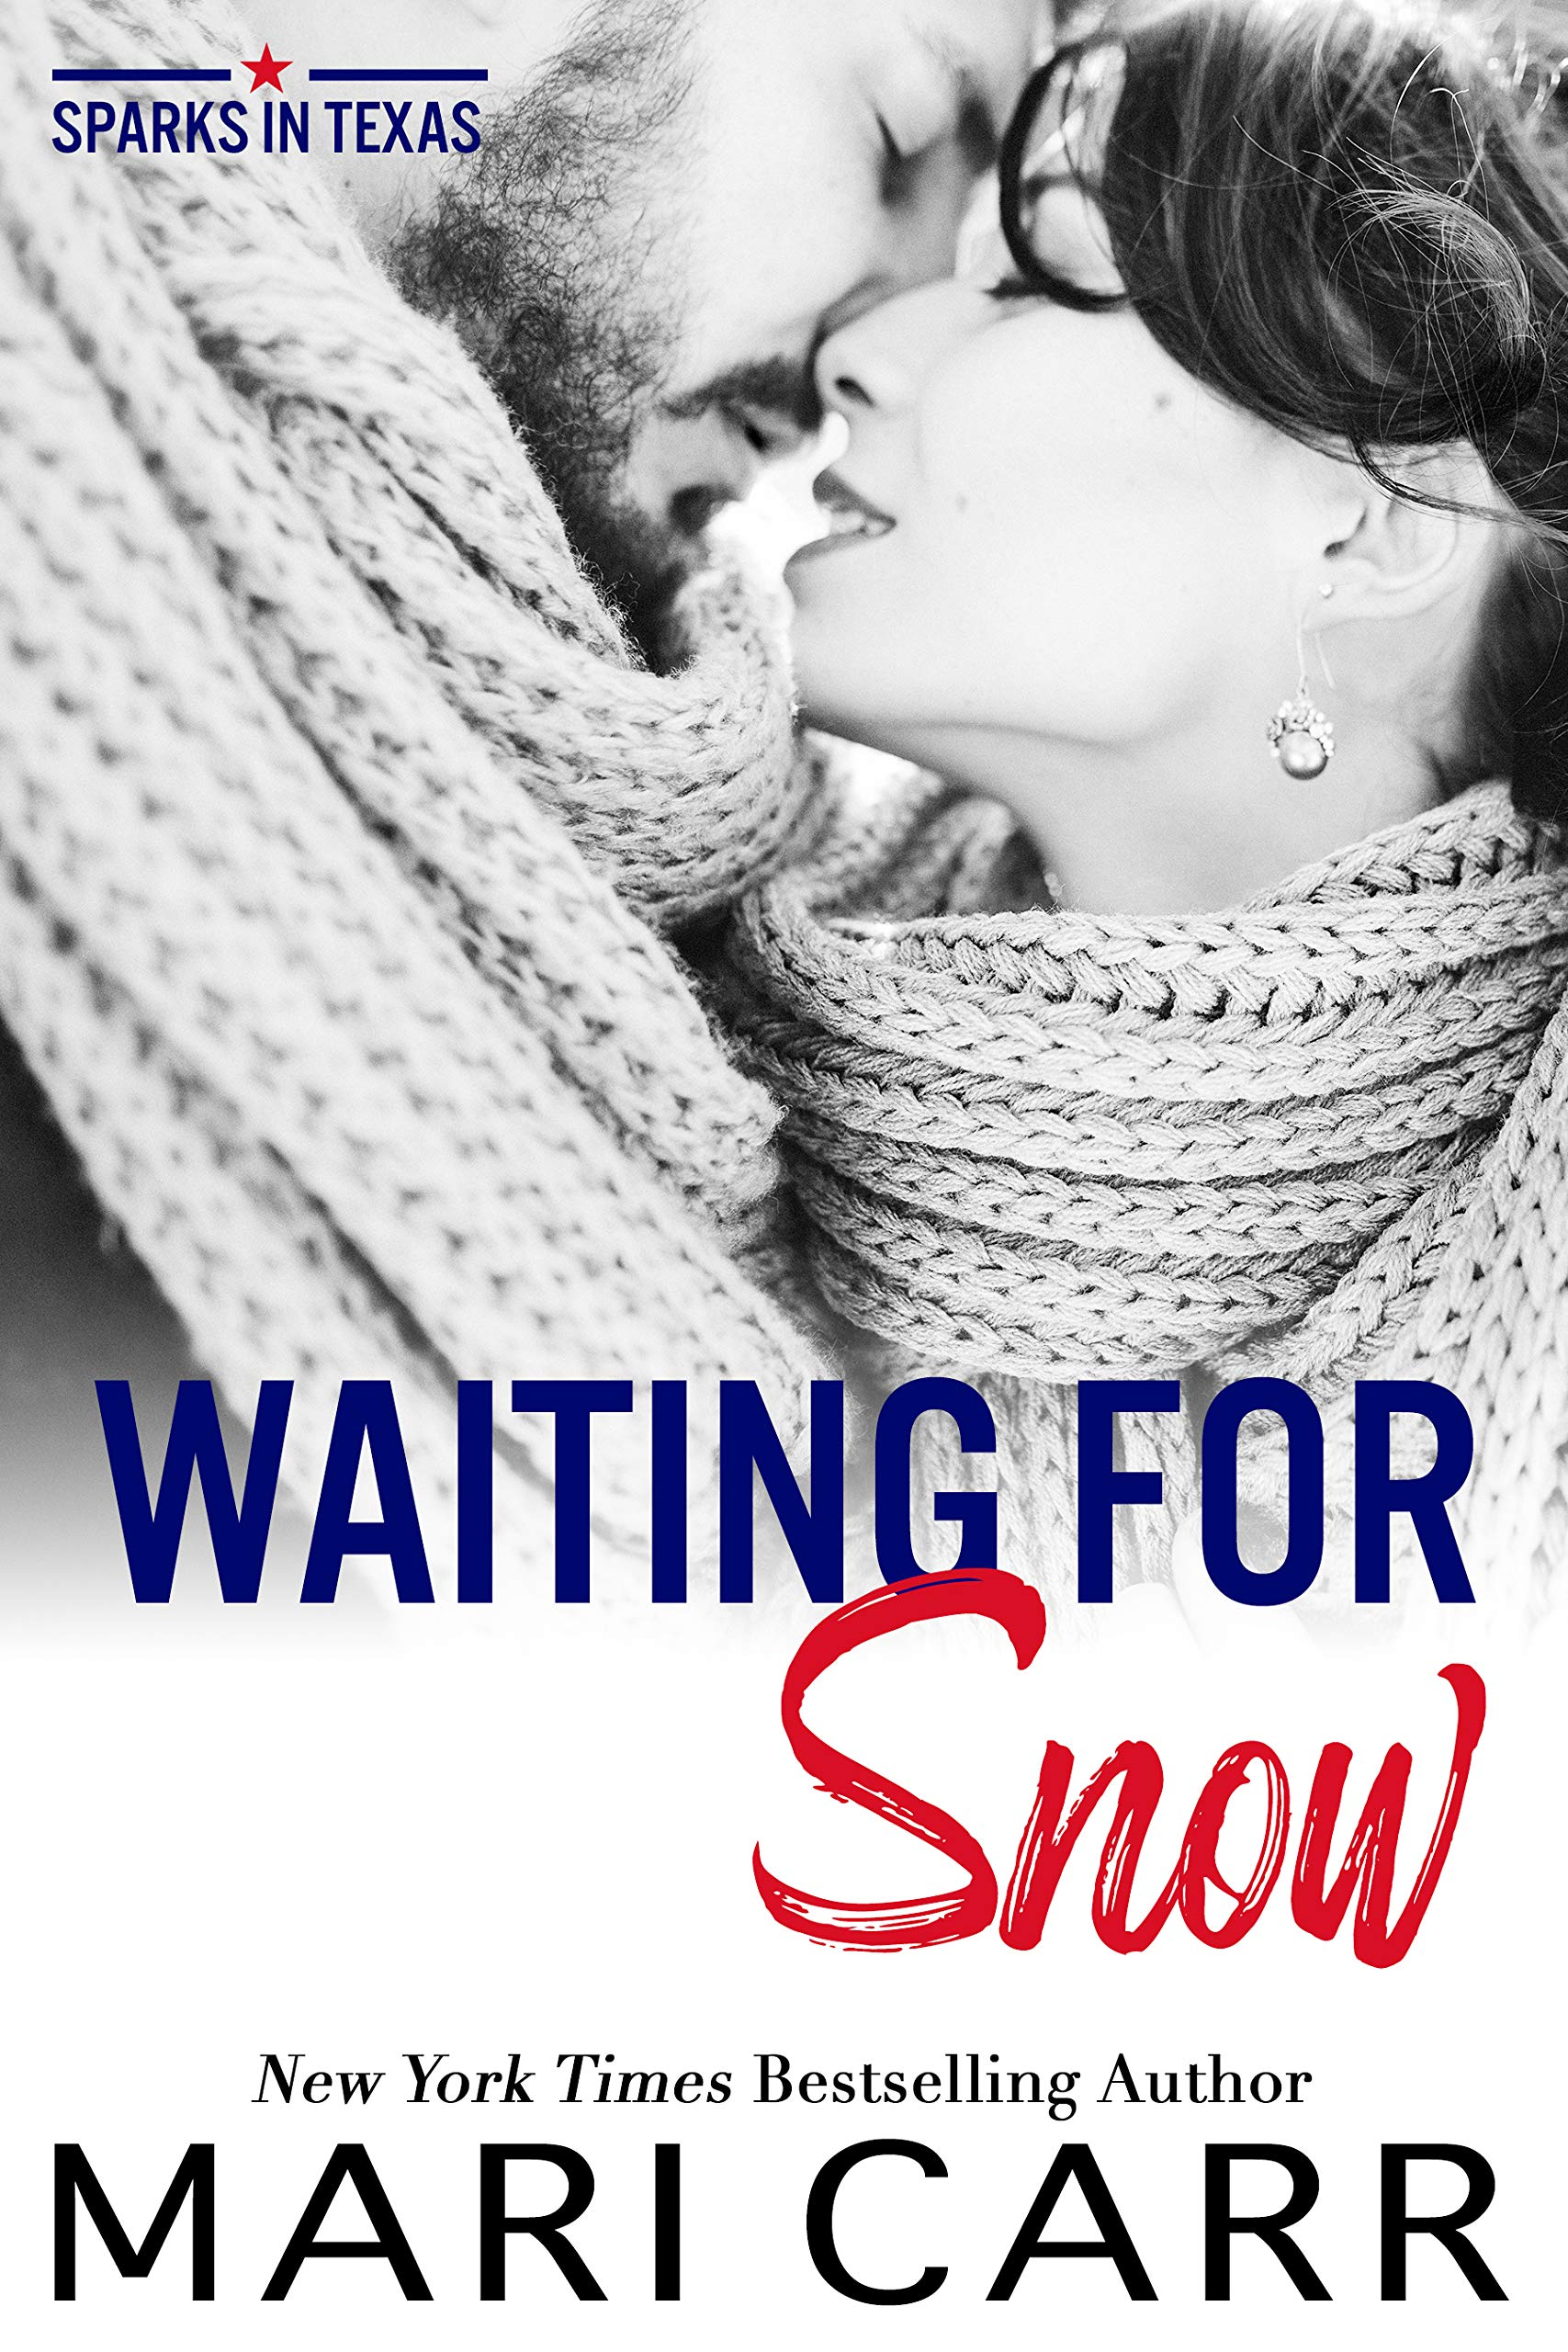 Waiting for Snow (Sparks in Texas #6)